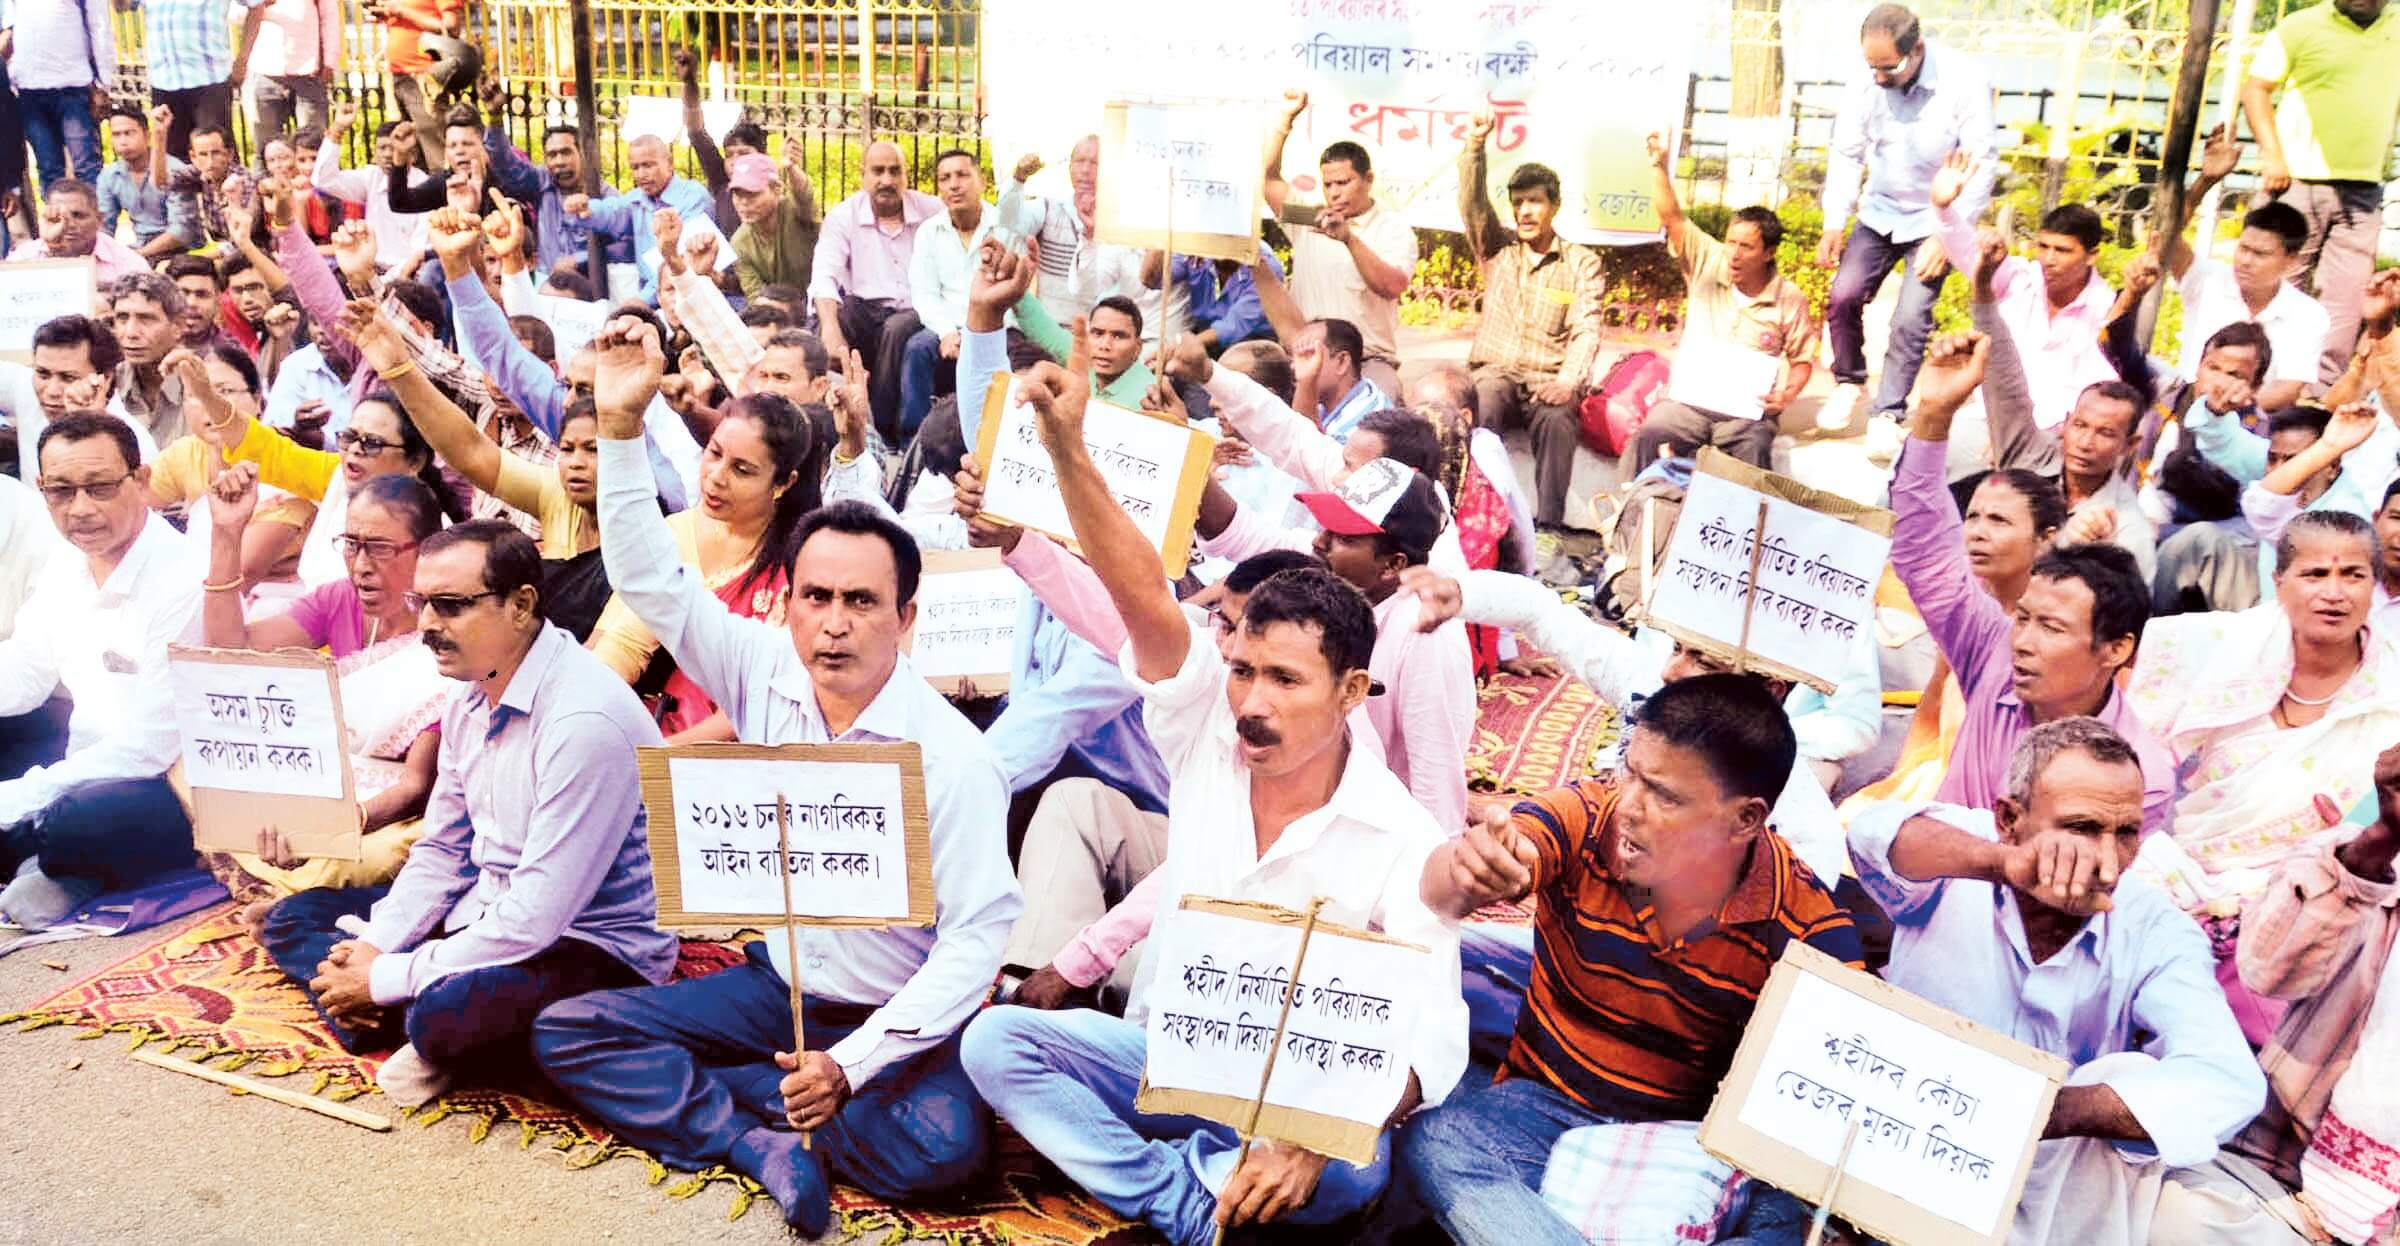 Martyrs' kin hit the streets against Citizenship Bill